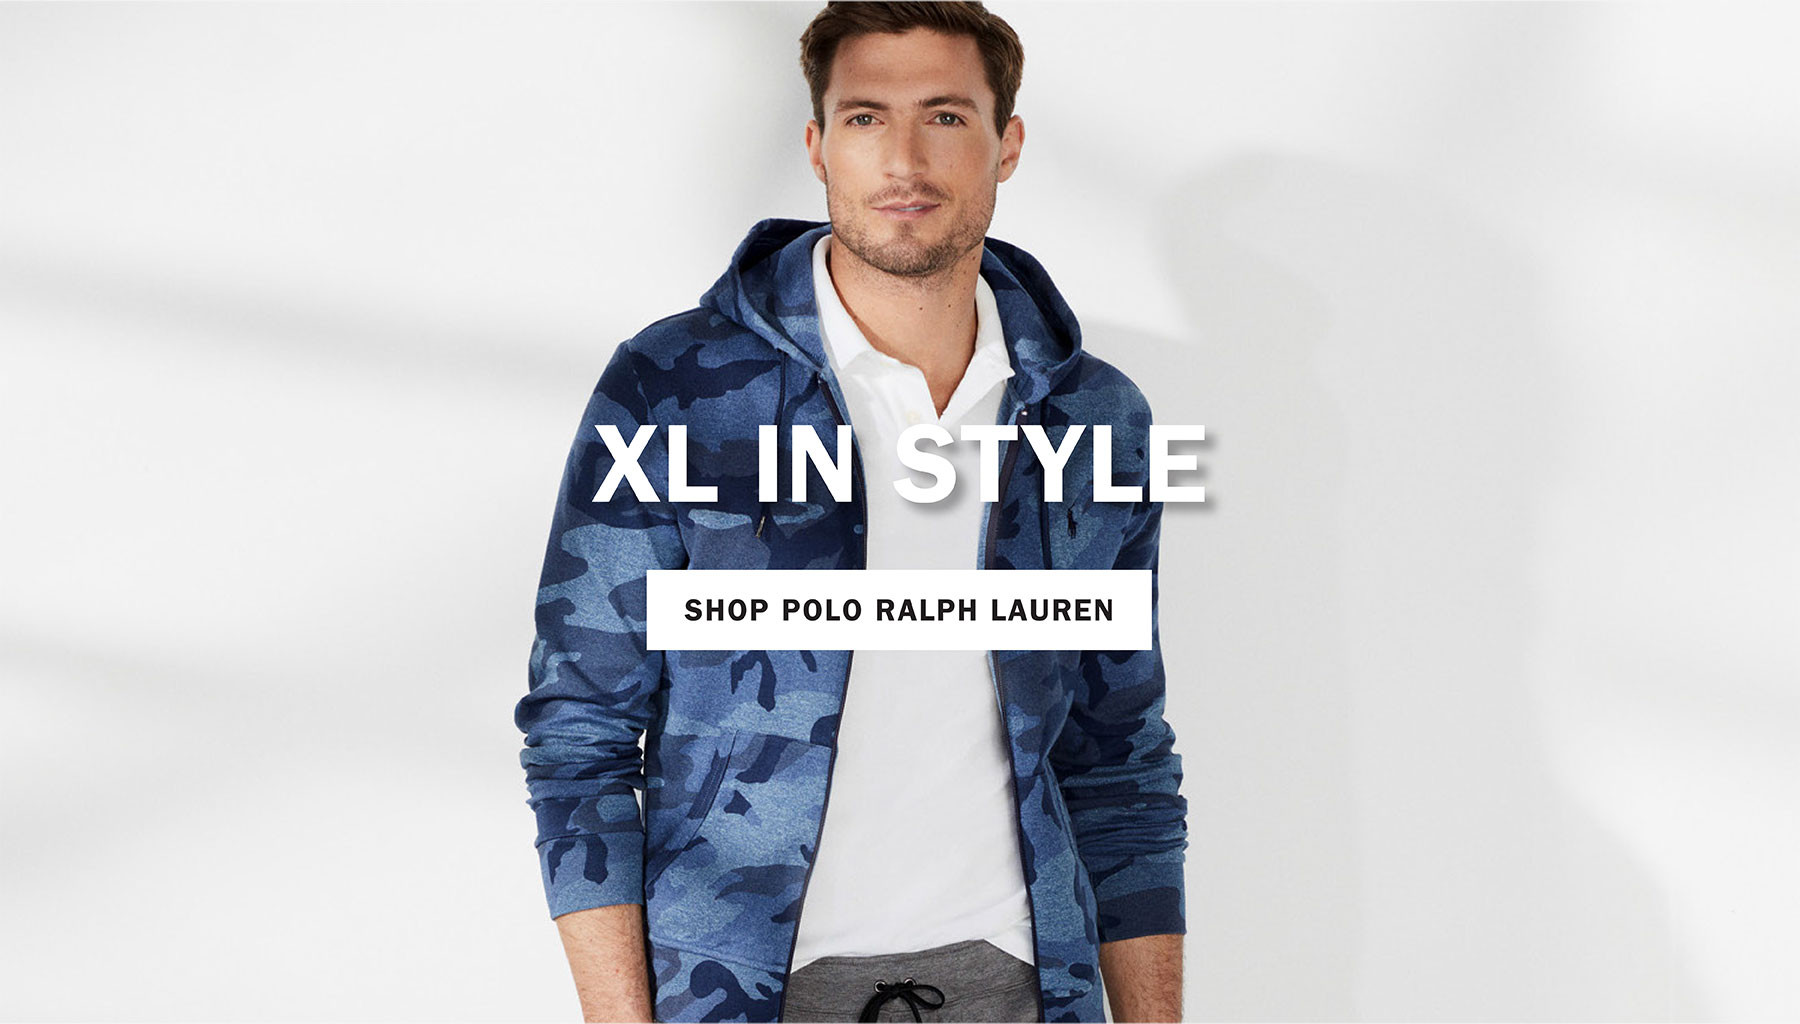 XL IN STYLE | SHOP POLO RALPH LAUREN